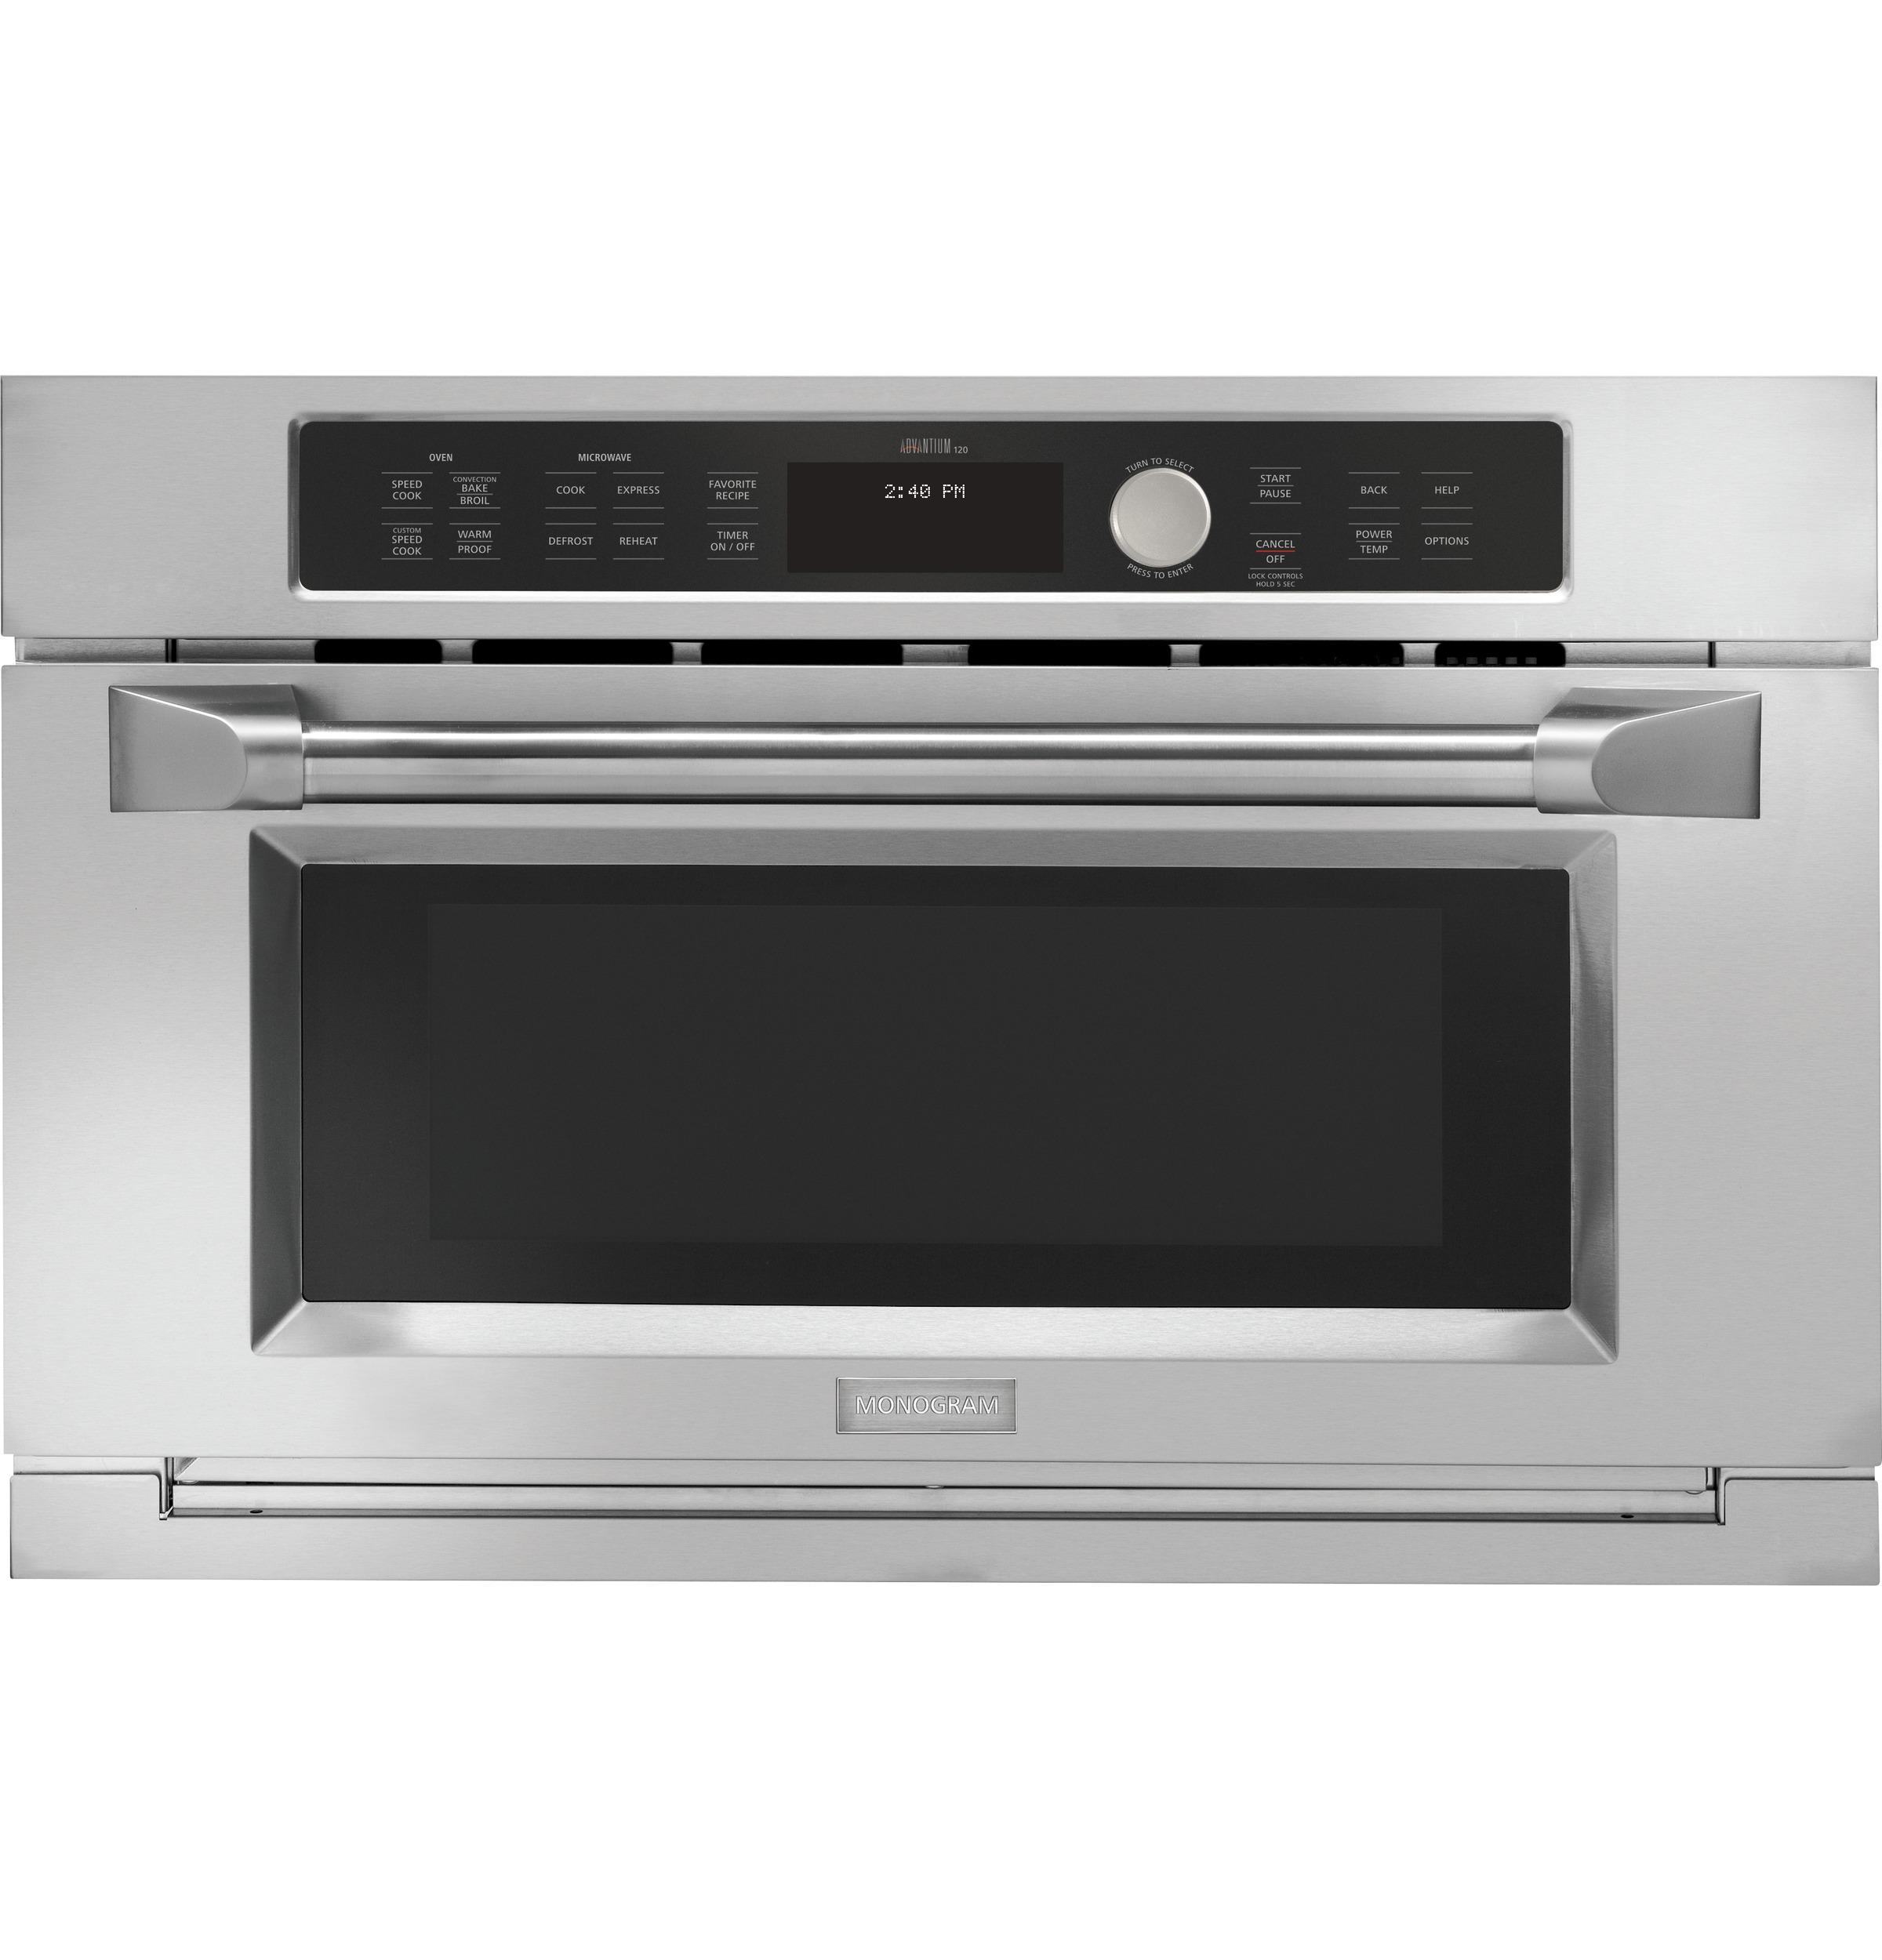 Frigidaire Stove Warranty  Coleman Stove Parts Canadian Tire  Wood